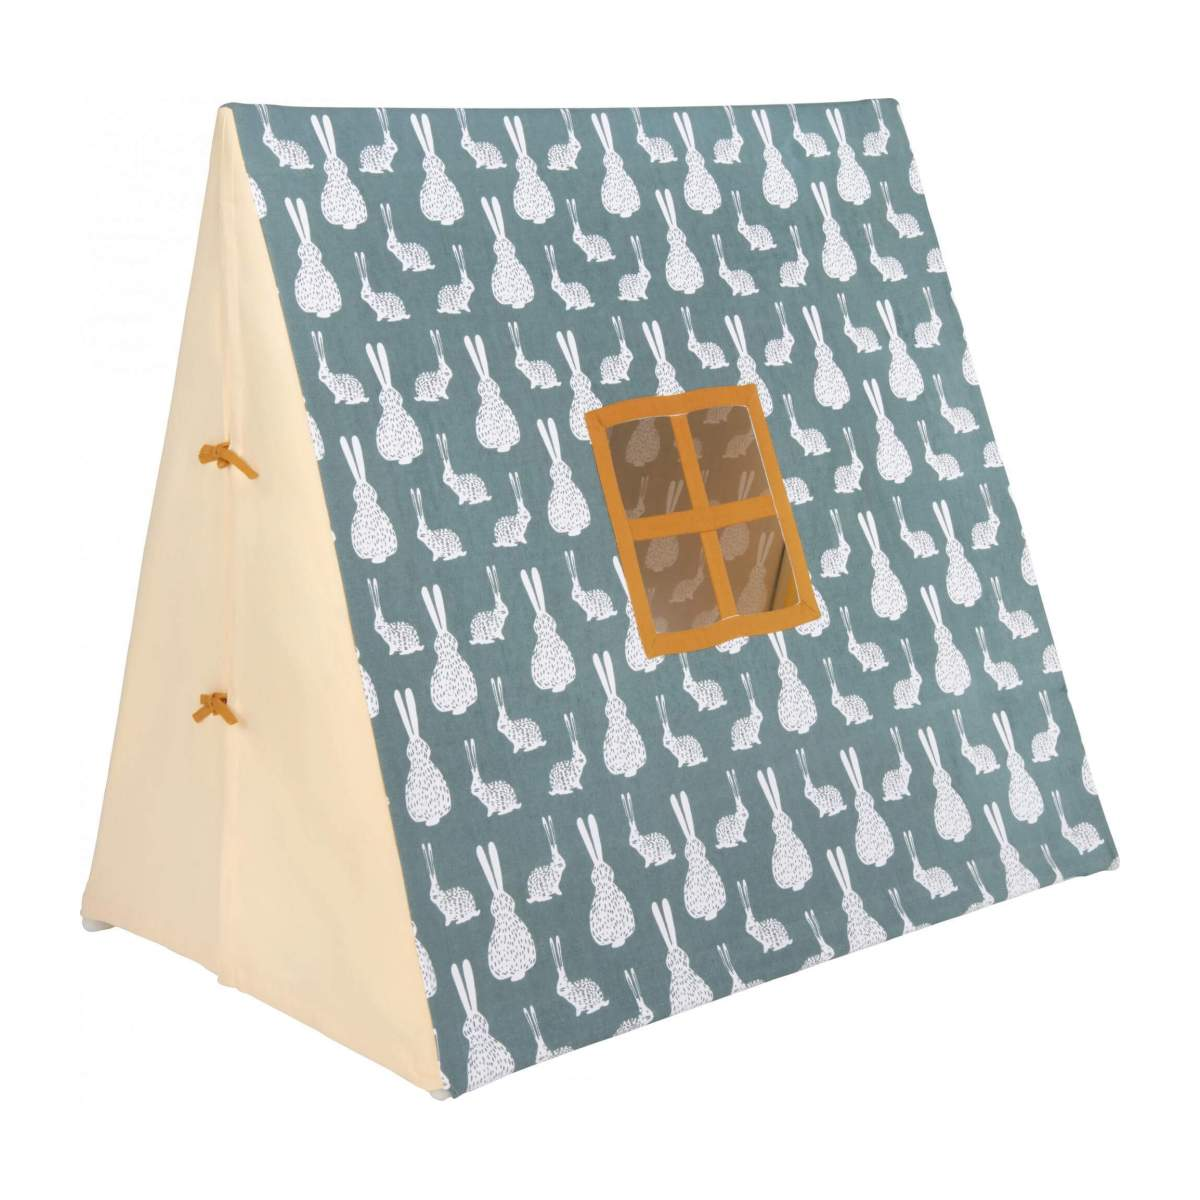 Tent made of cotton, bunny pattern n°1